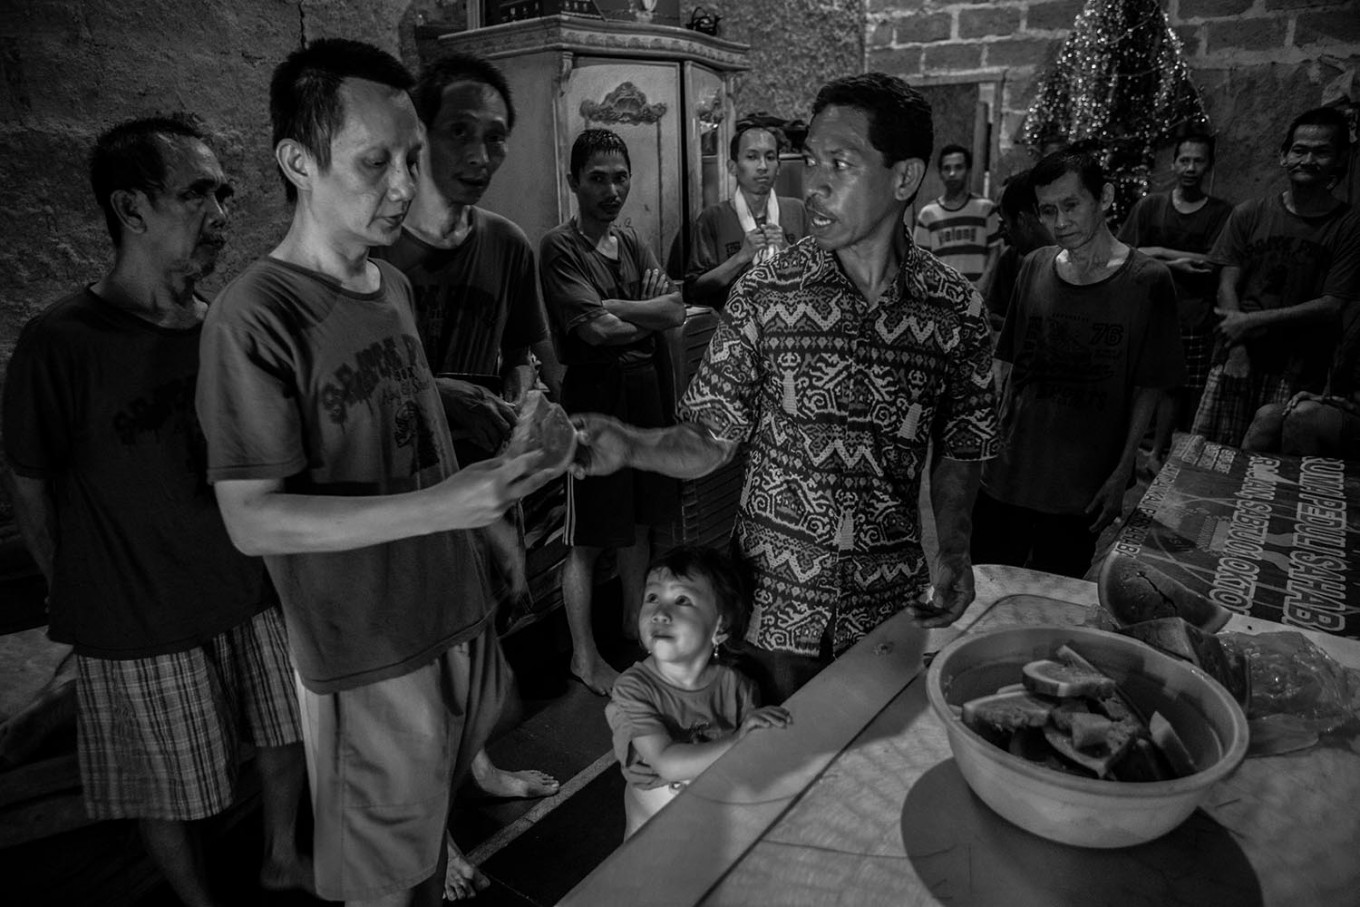 One for one: Imanuel Talan distributes slices of watermelon to residents while his daughter, 2-year-old Senandung Nathania Talan, watches. JP/Seto Wardhana